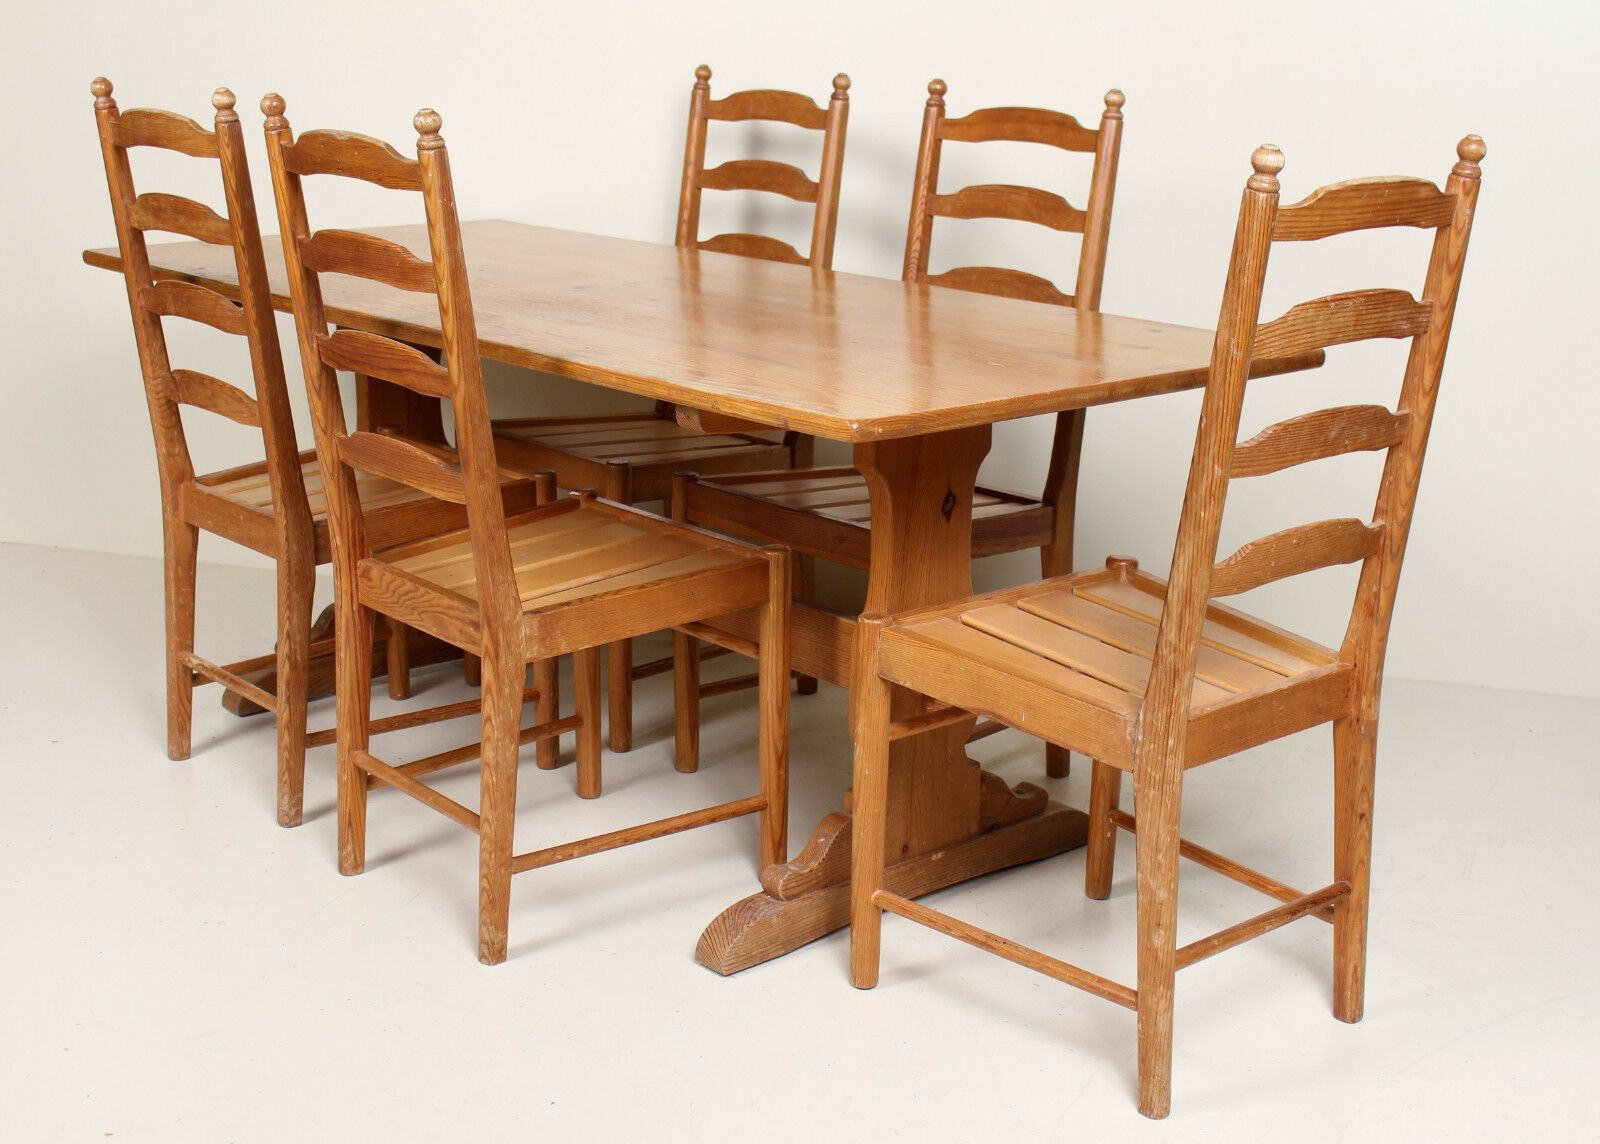 vintage ercol pine refectory dining table and 5 chairs rustic country farmhouse